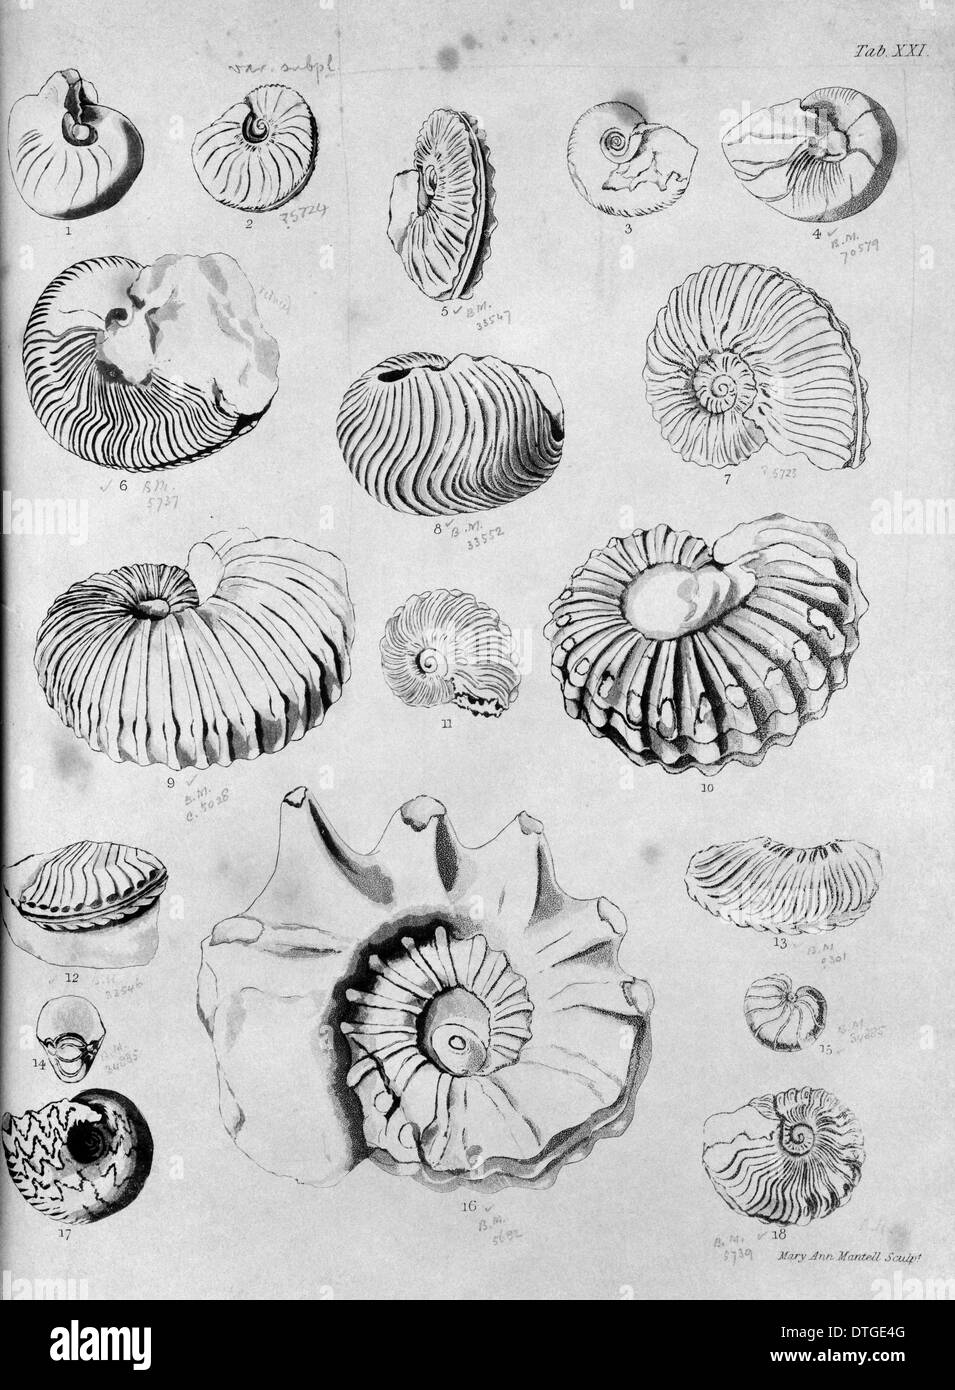 Collection of fossilised molluscs - Stock Image